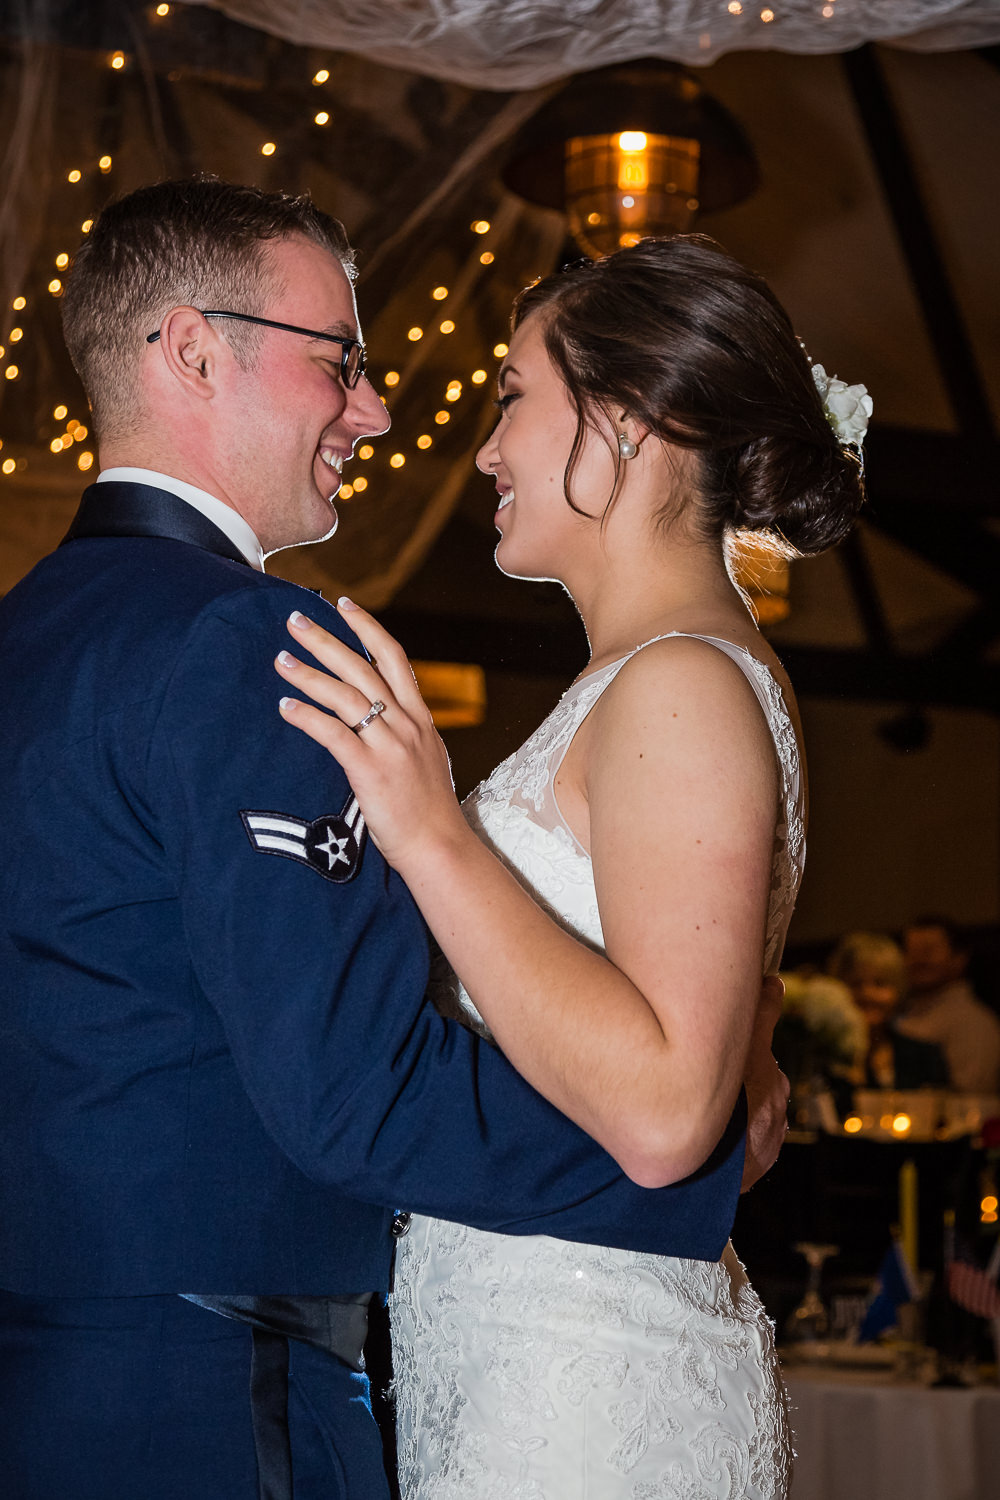 billings-montana-wedding-airforce-first-dance.jpg